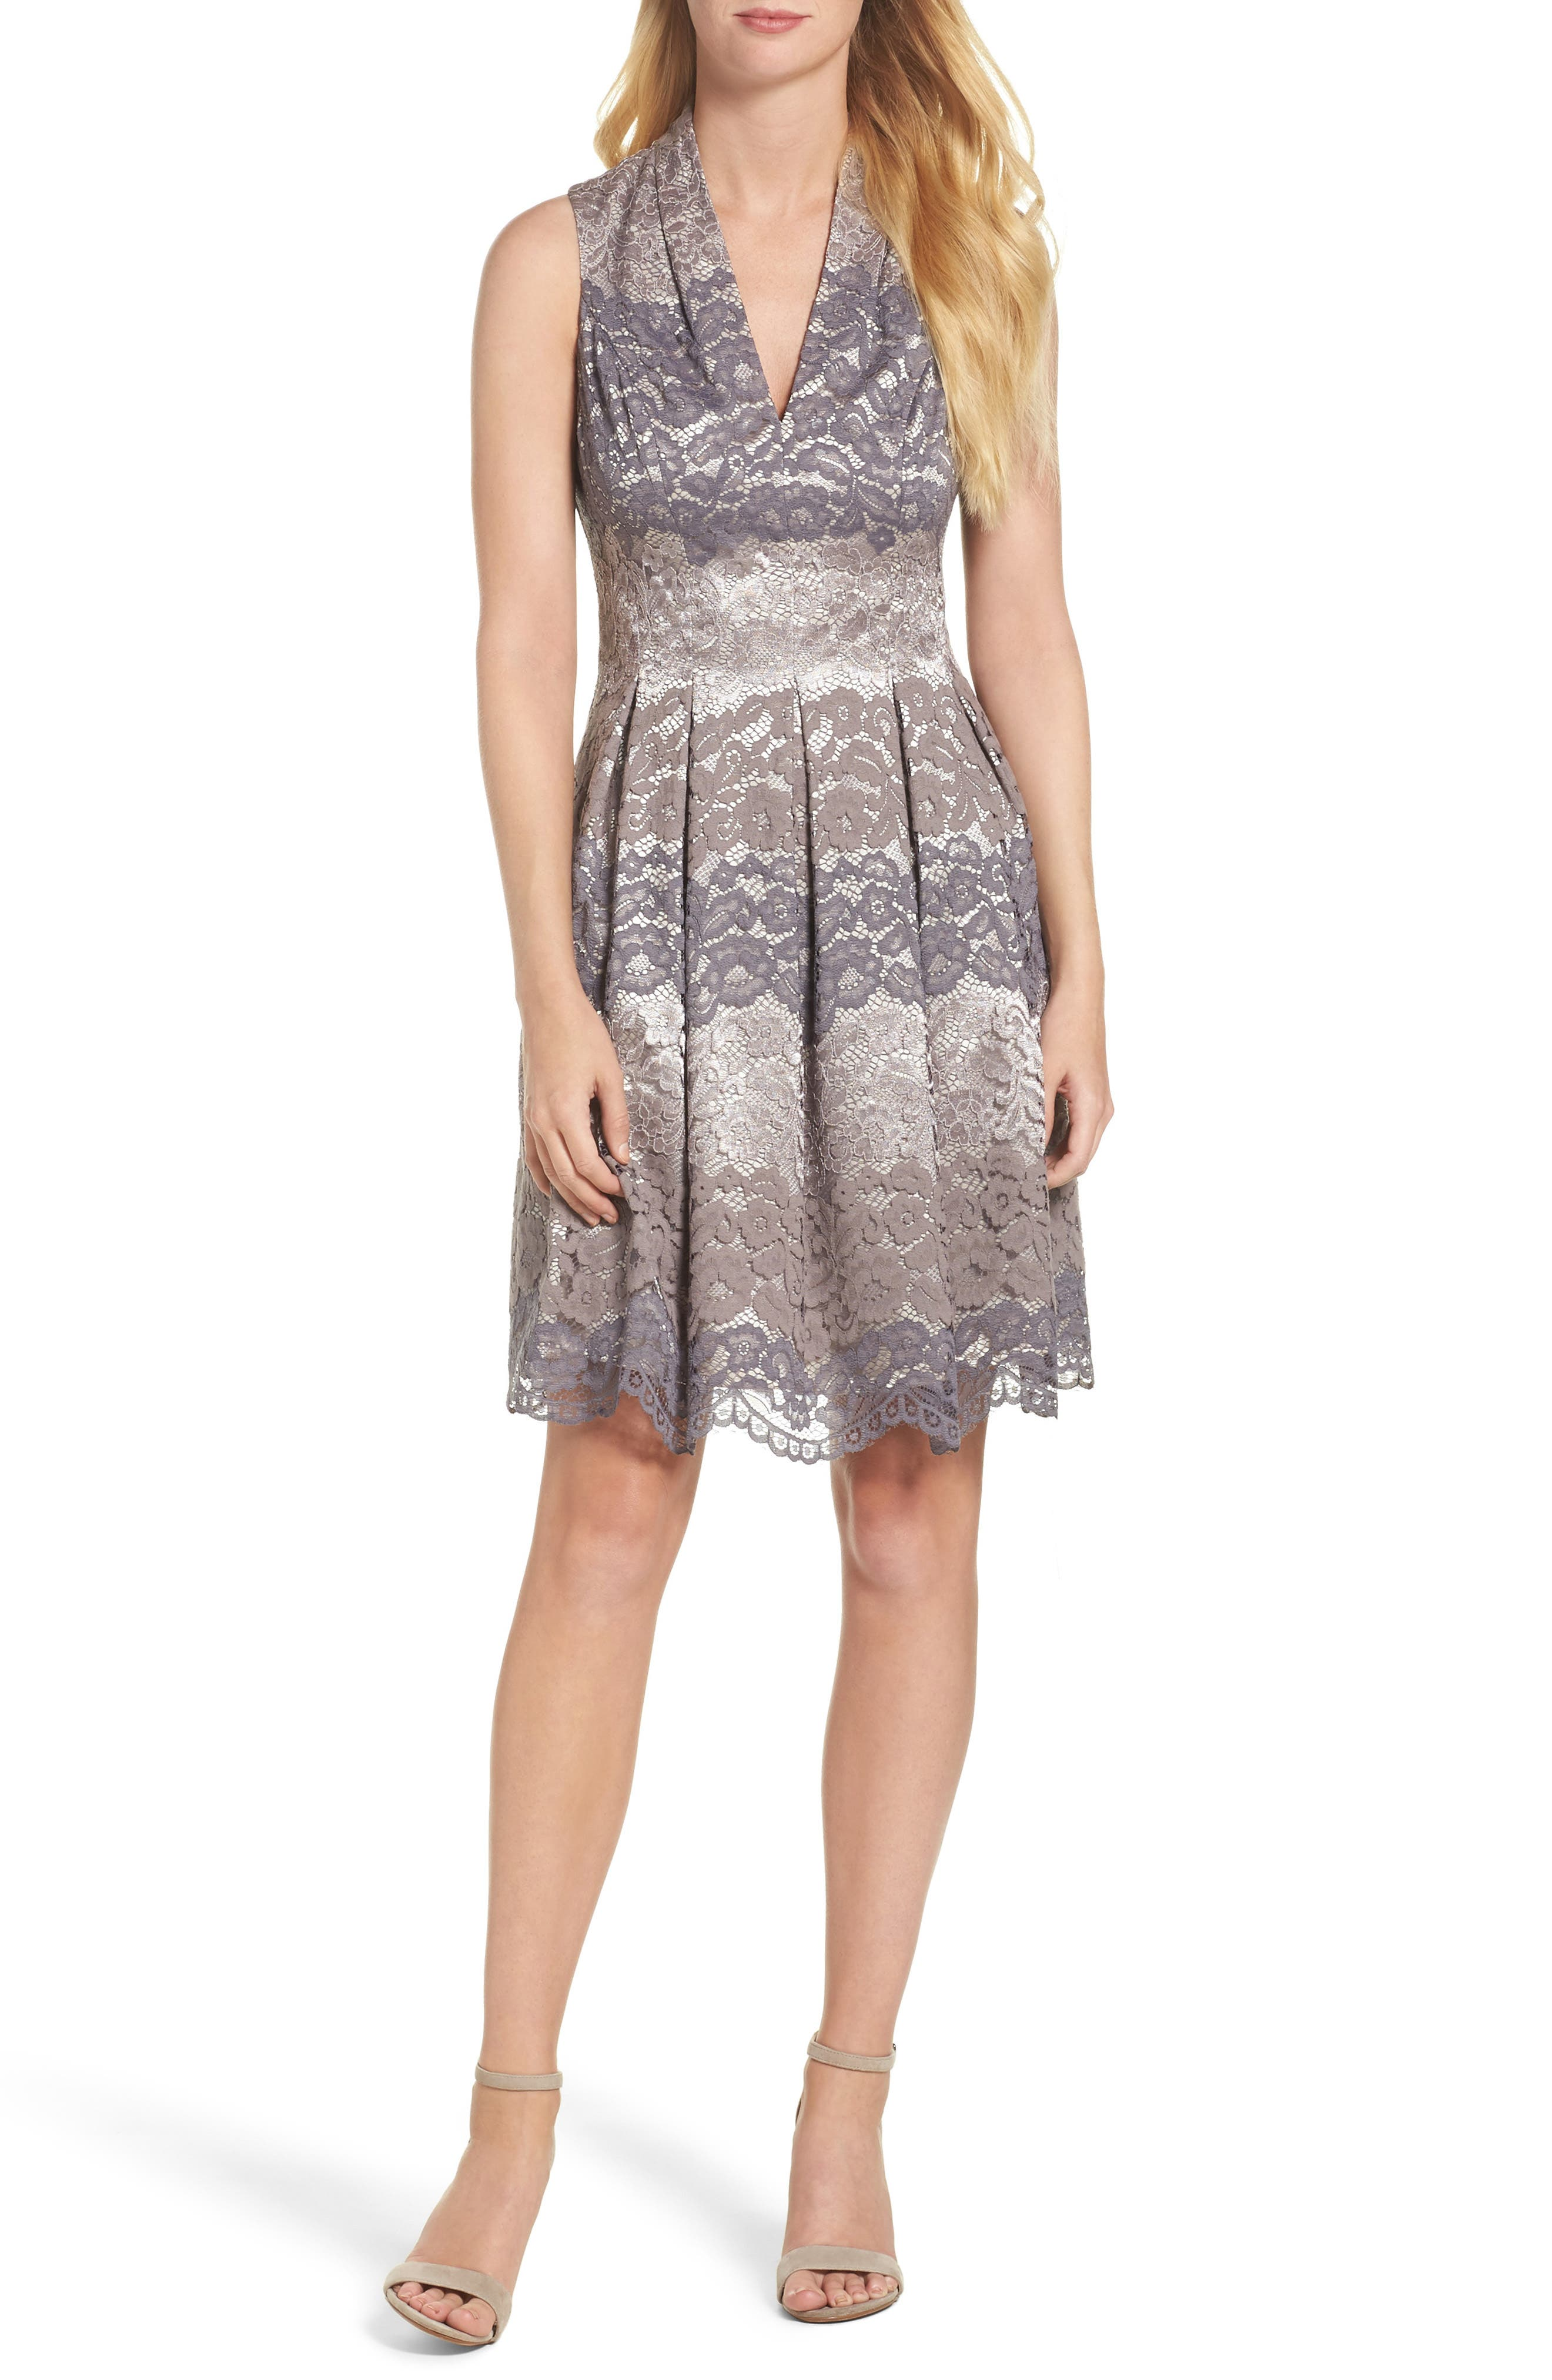 Main Image - Vince Camuto Lace Fit & Flare Dress (Regular & Petite)